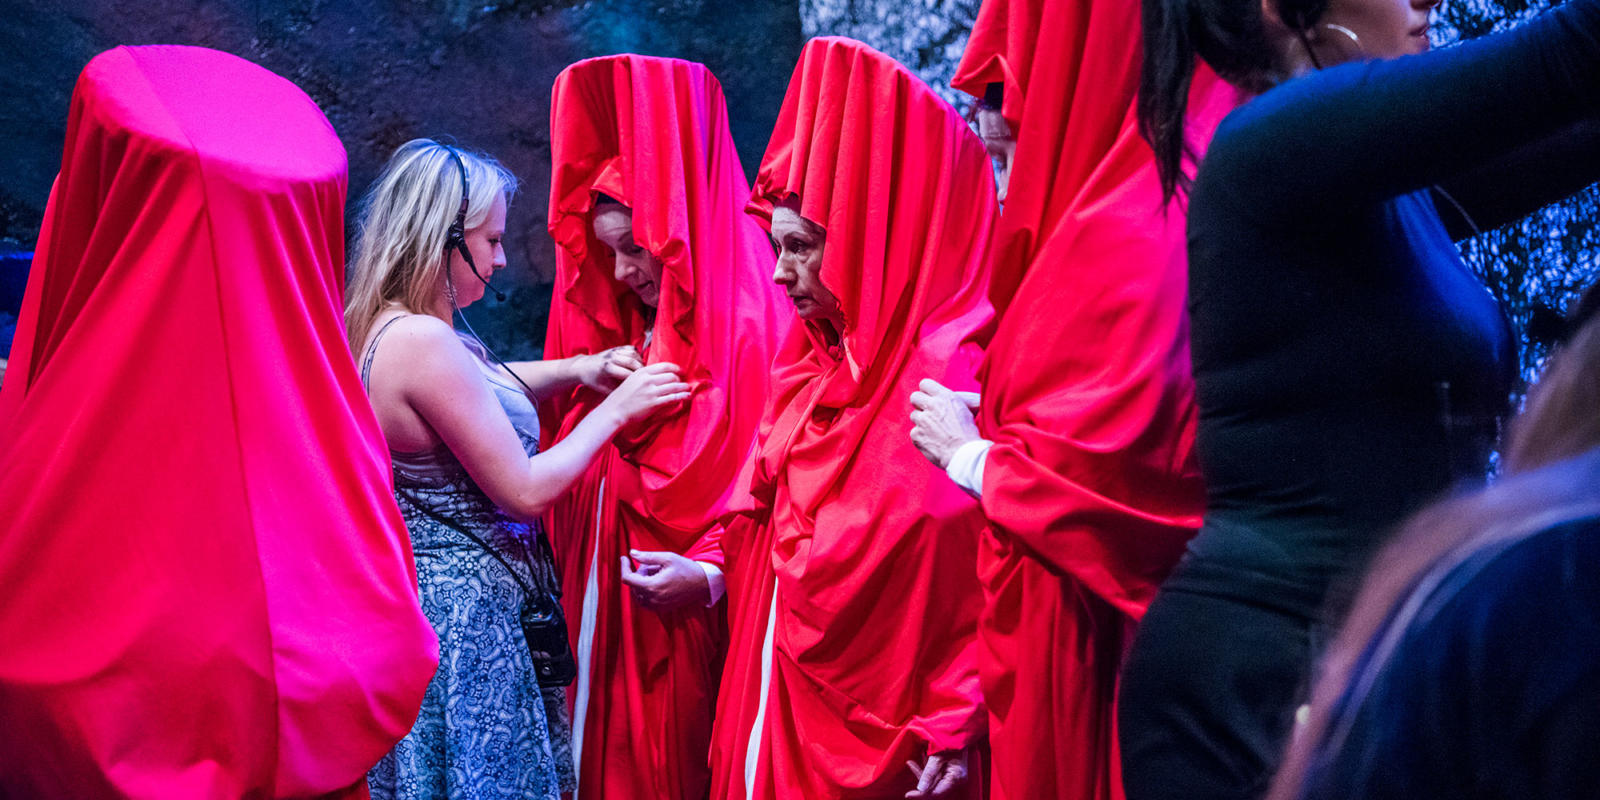 The female members of the chorus having their costumes adjusted by Emily Adamson (c) Tristam Kenton